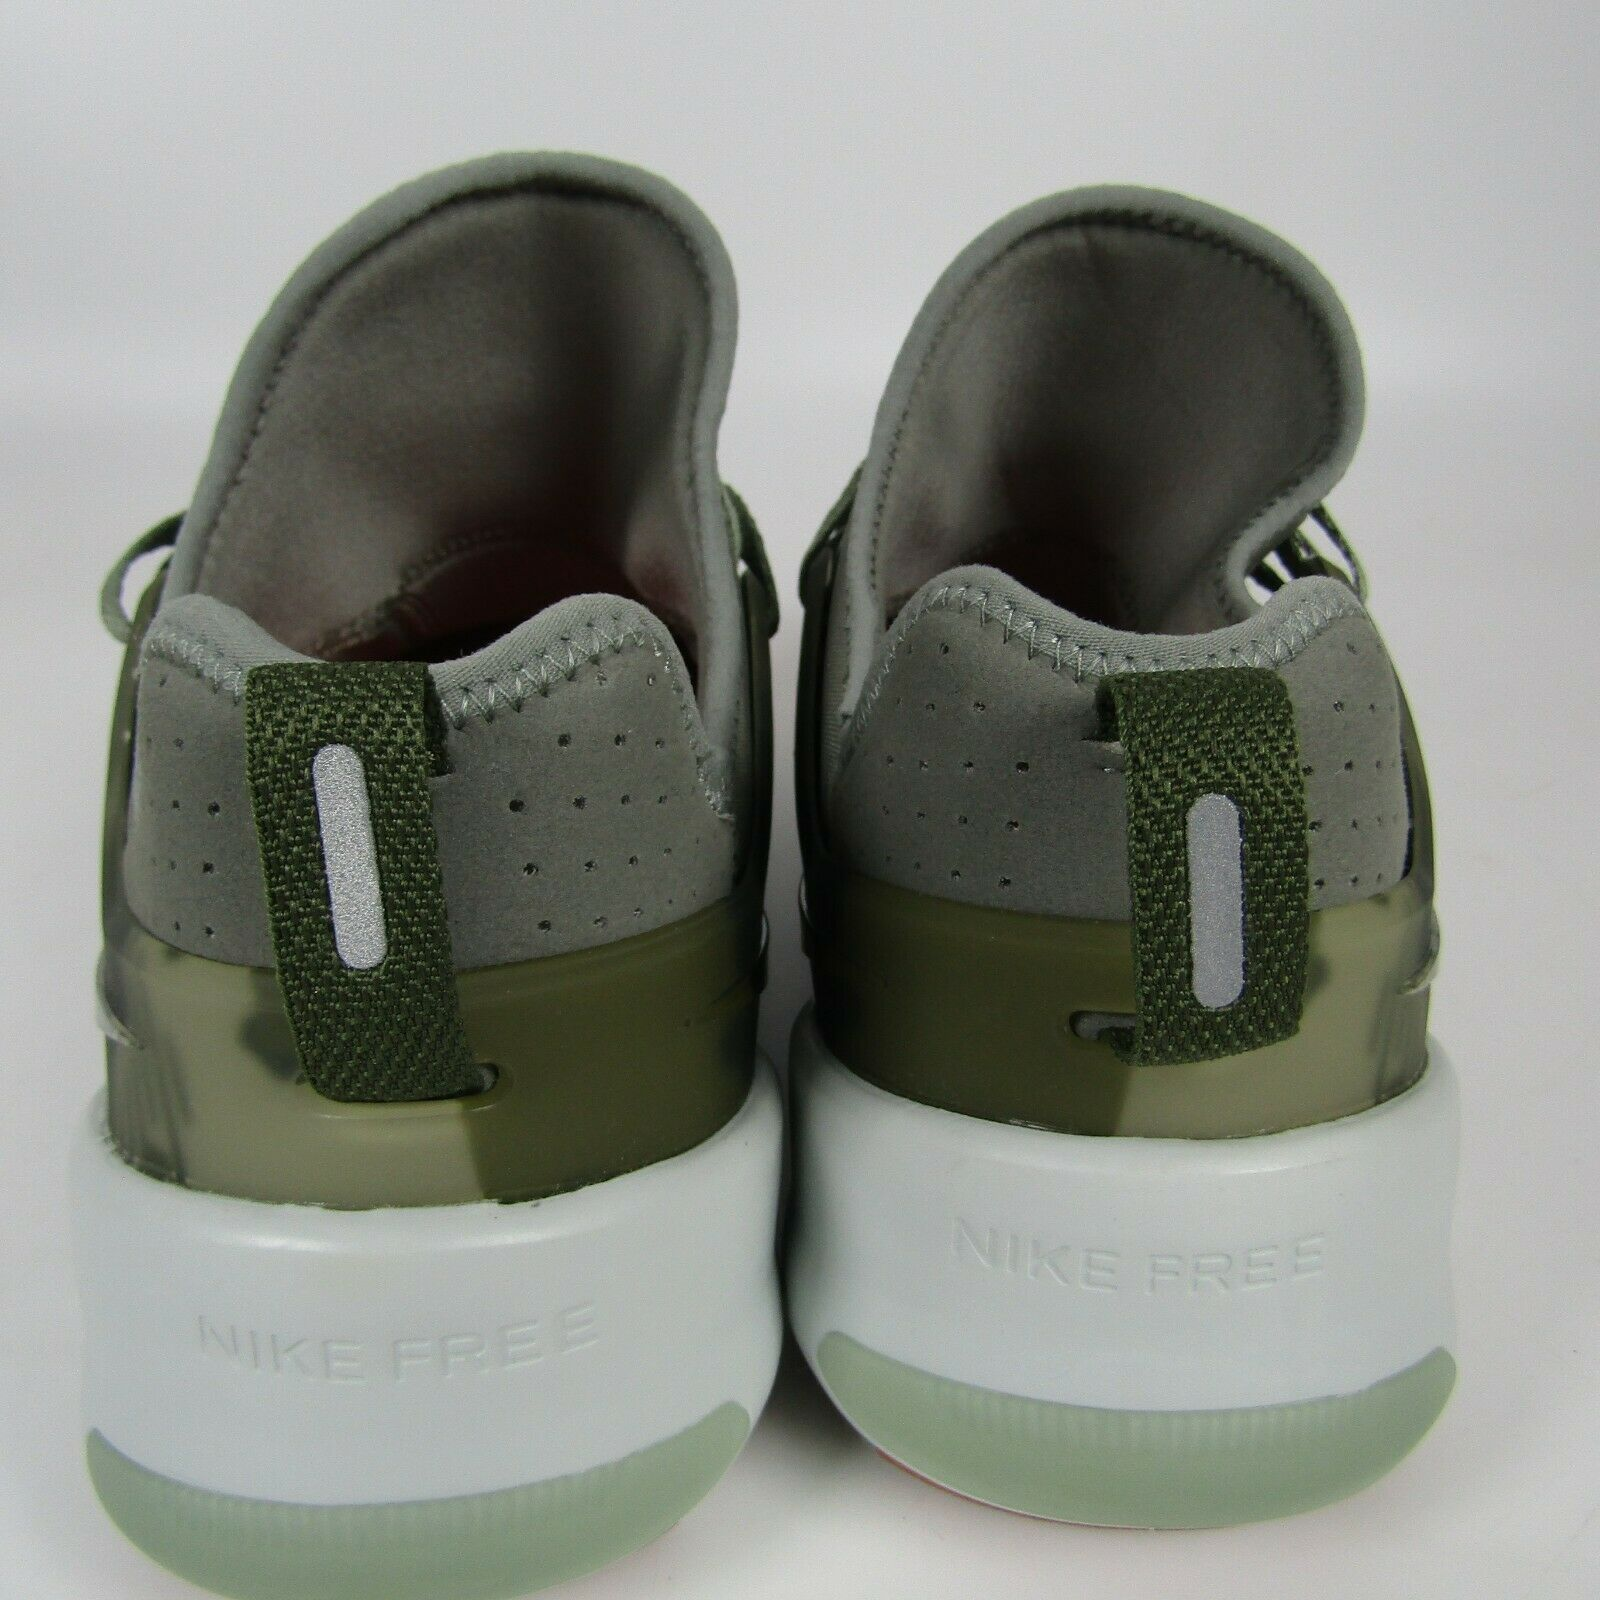 Mens Nike Free Metcon Running Shoes Size 11.5 Green Tan Camo AH8141 002 Trainer image 5